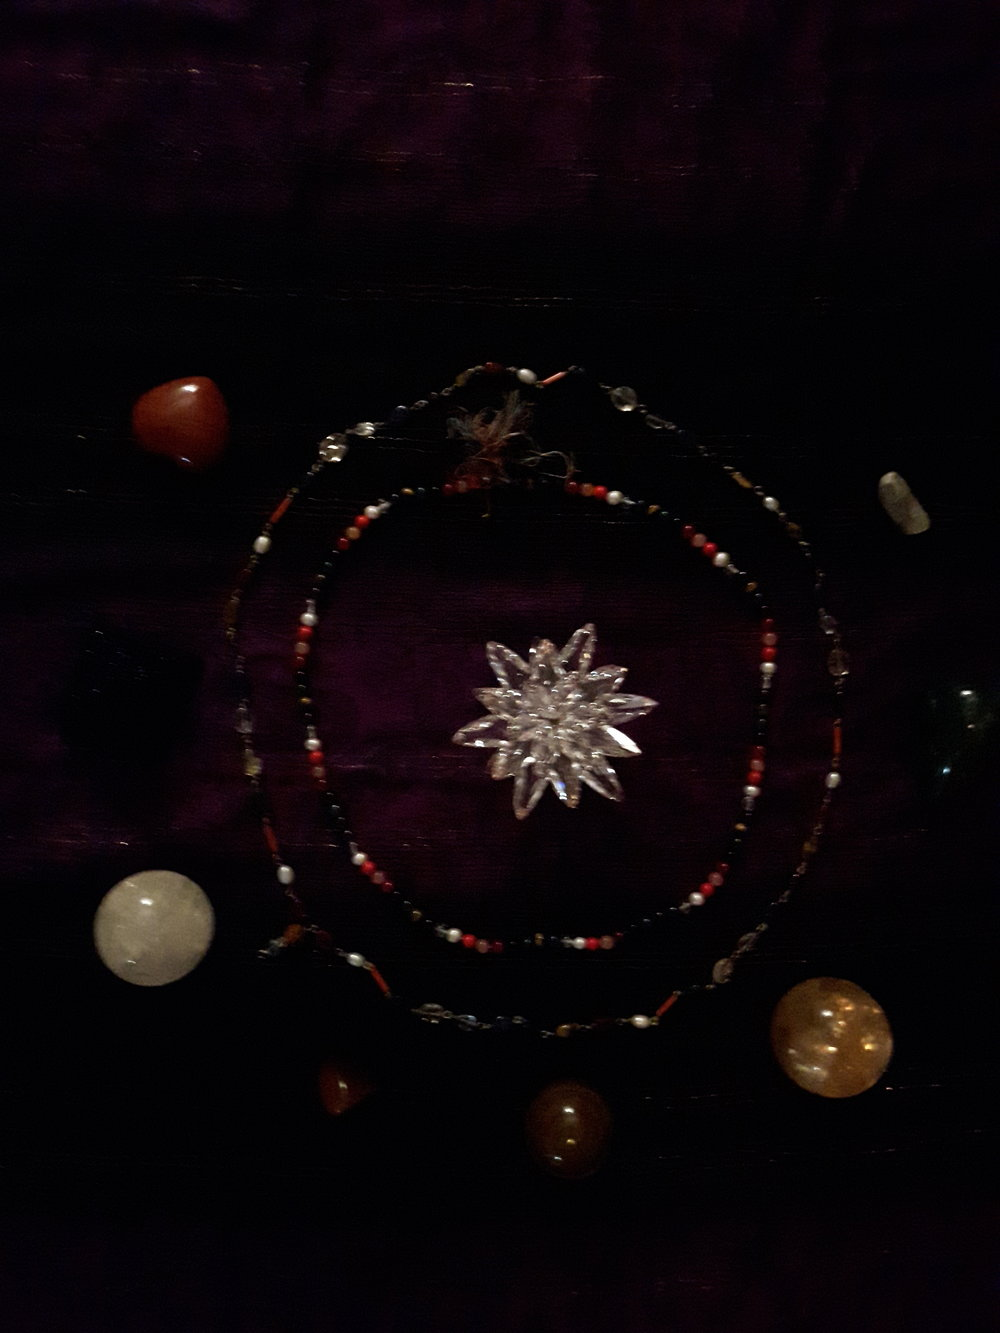 Build your personal astrological mala and learn the mantras to empower it.